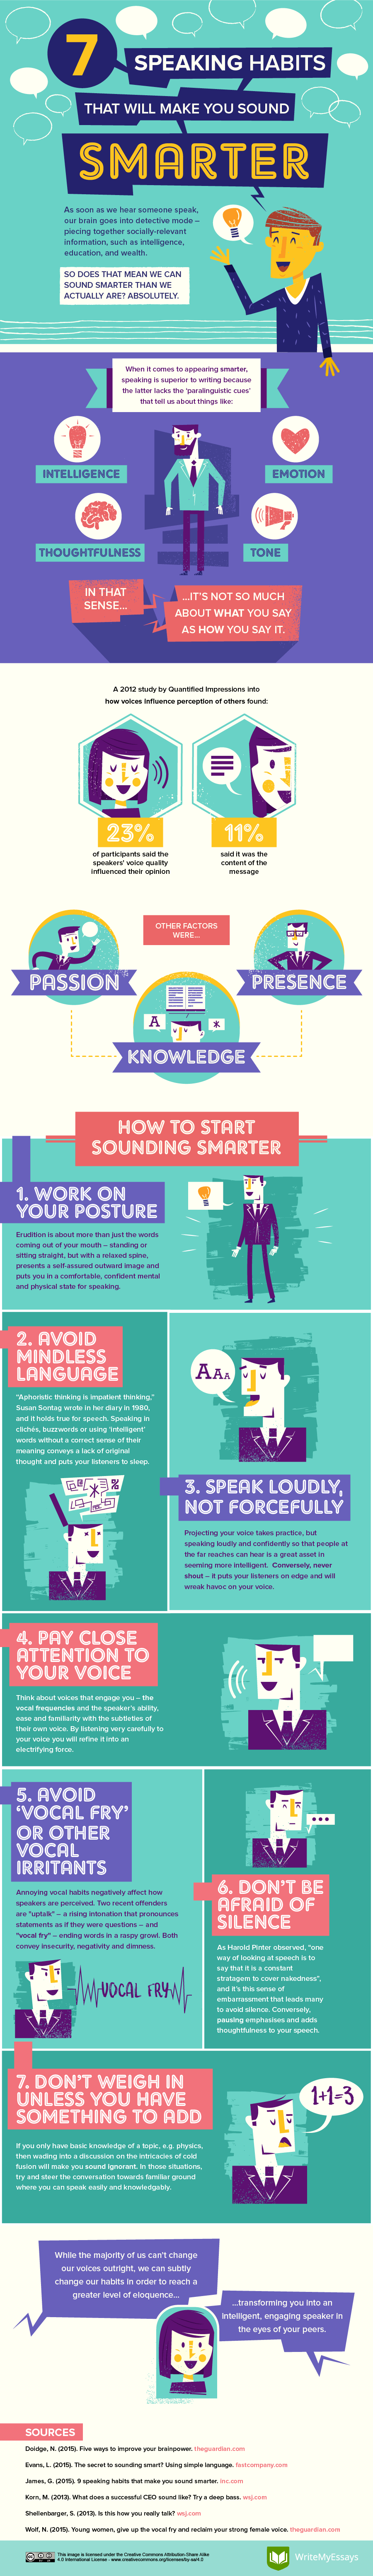 7 Speaking Habits That Will Make You Sound Smarter Infographic